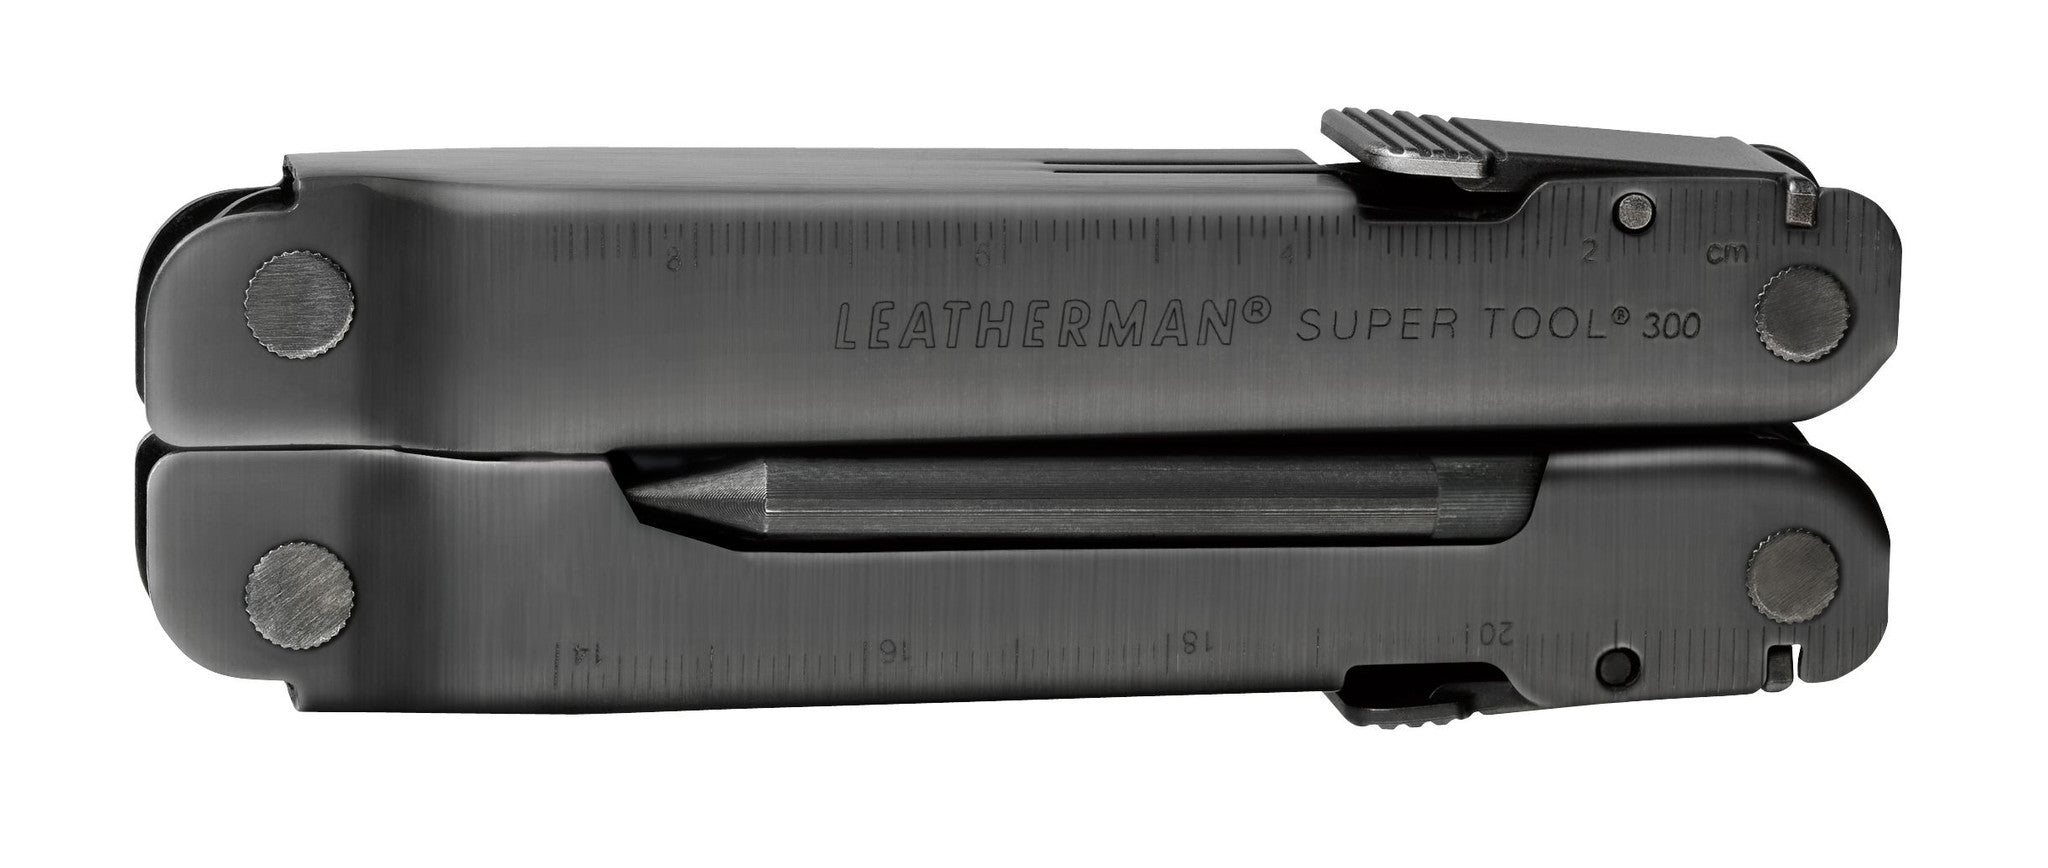 Leatherman Super Tool 300 EOD - BNR Industrial